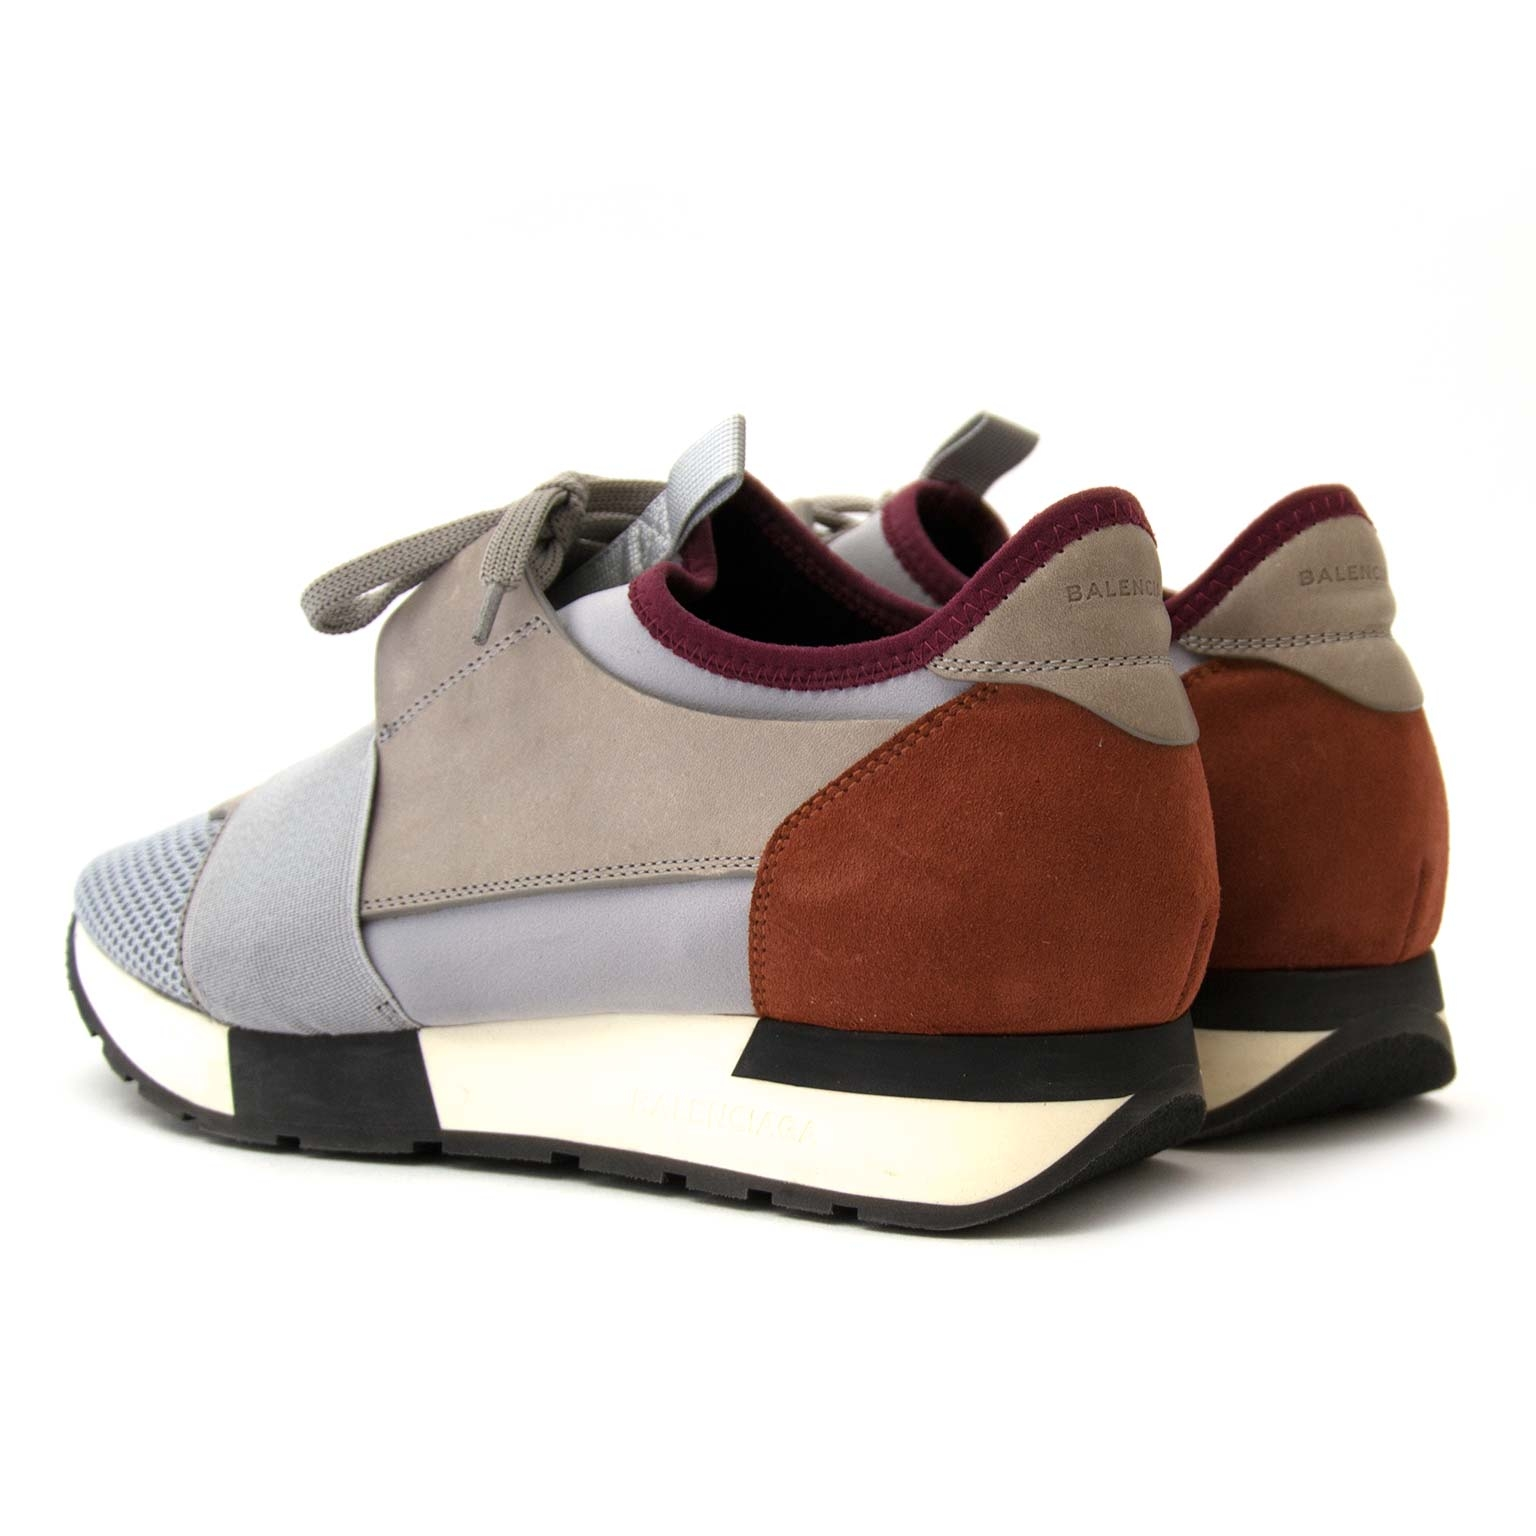 balenciaga race runner grey and orange now for sale at labellov vintage fashion webshop belgium